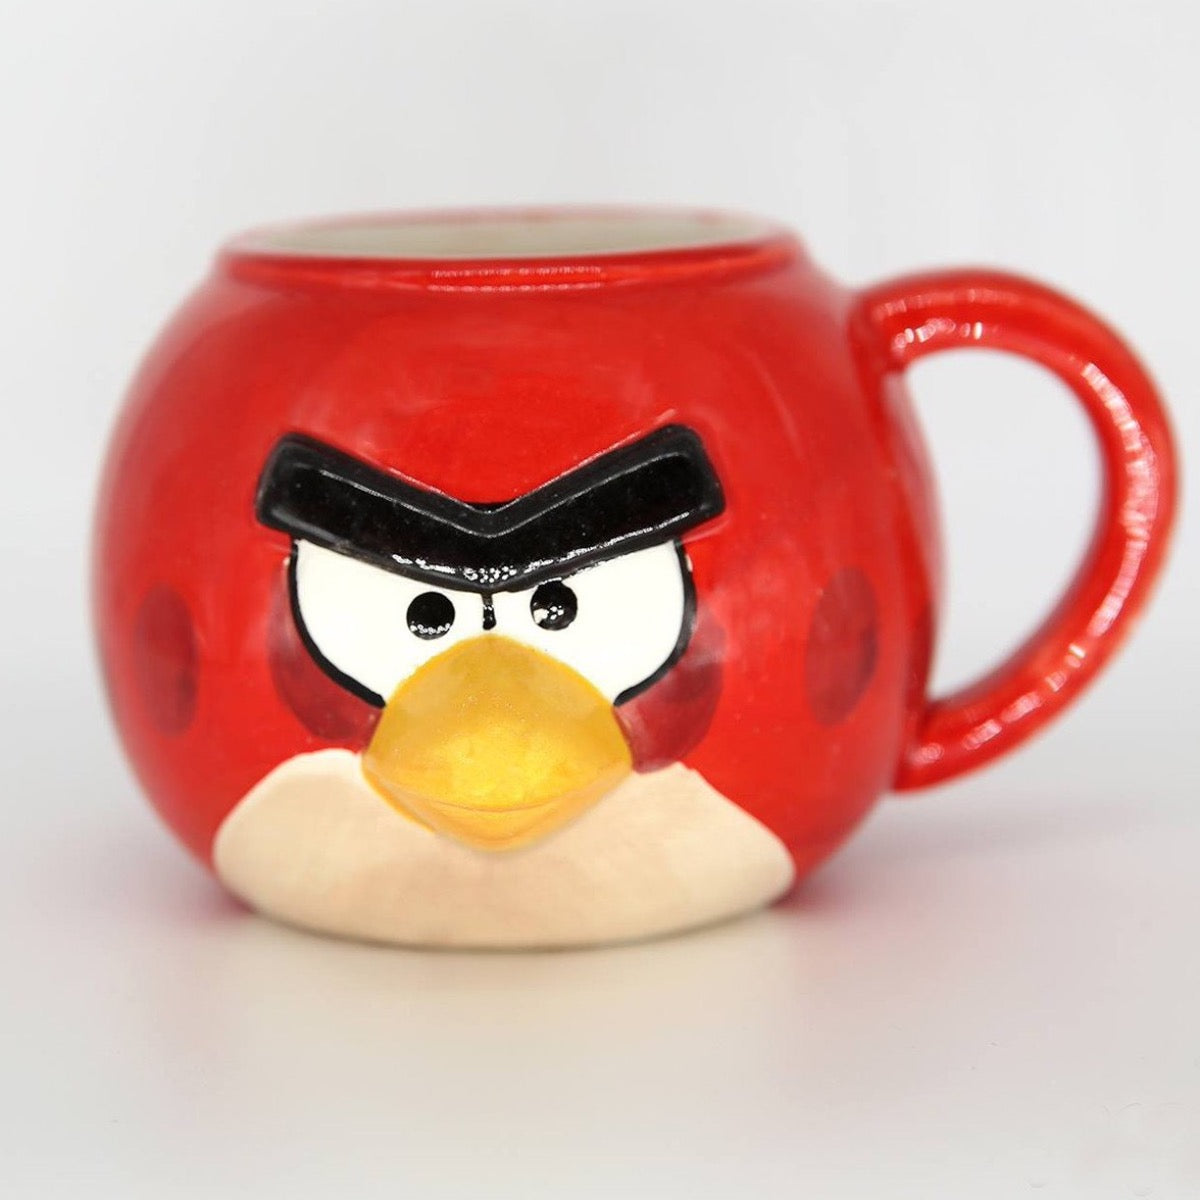 ANGRY LAAL Mug - Muggay.com - Mugs - Printing shop - truck Art mugs - Mug printing - Customized printing - Digital printing - Muggay